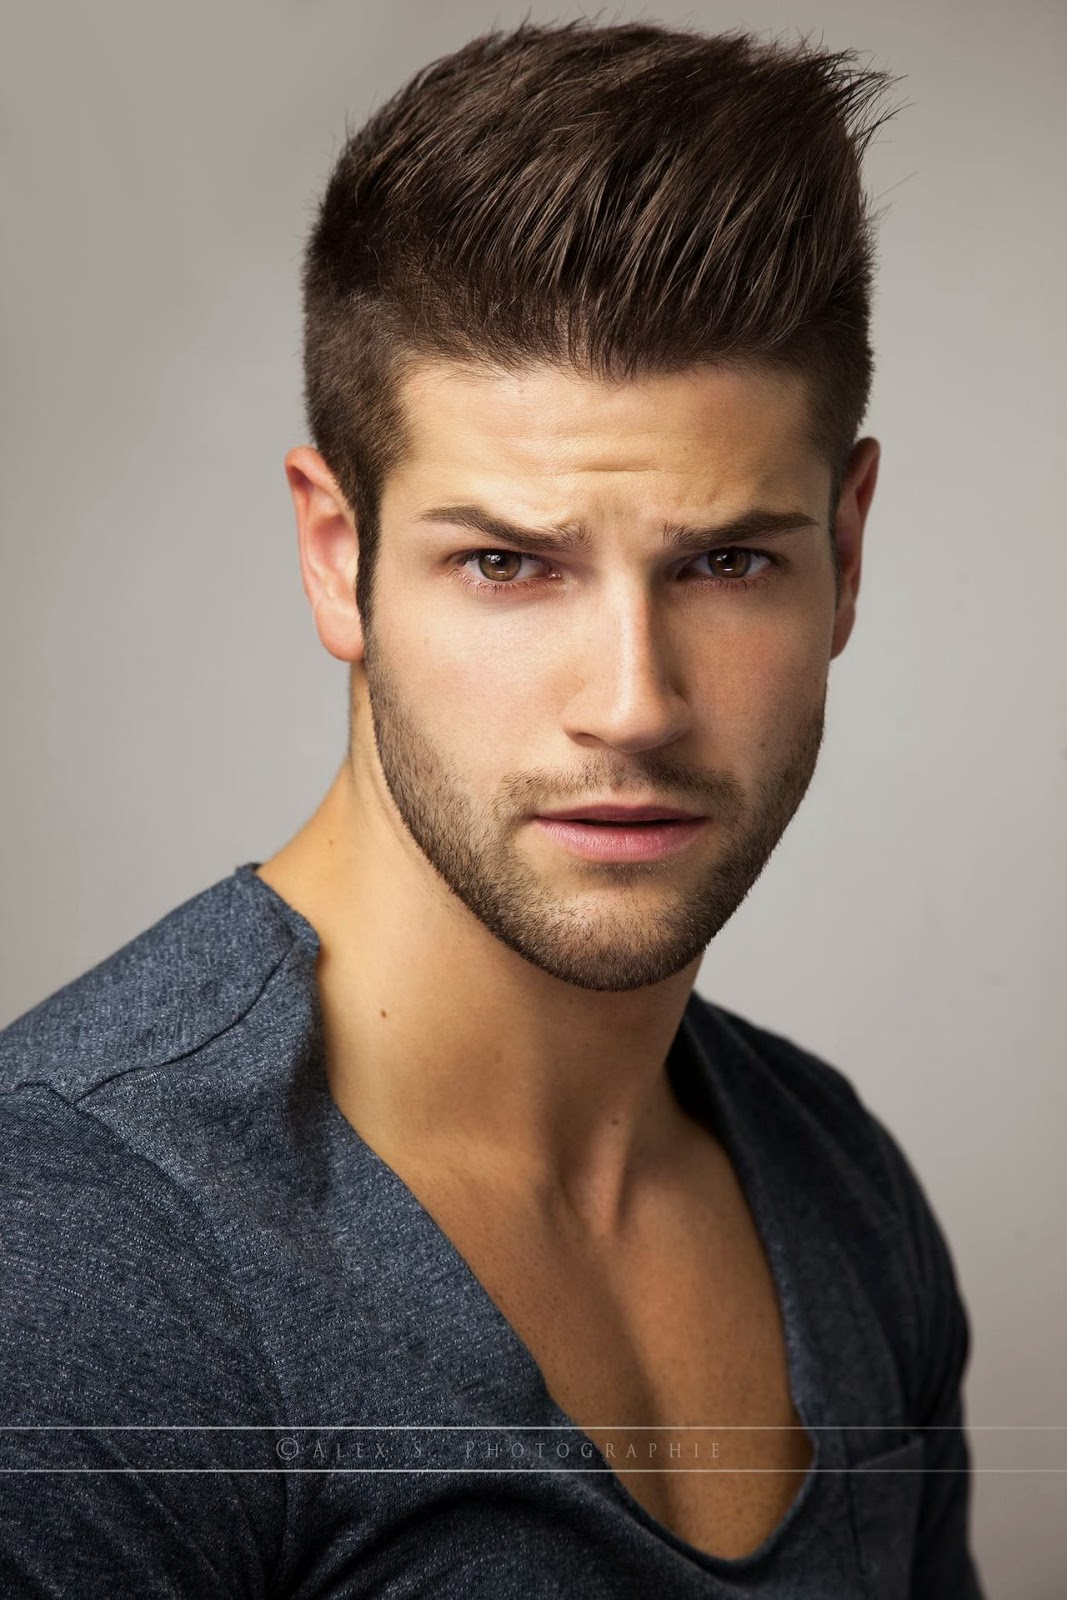 male model hair style s photo s baudoin 7911 | JEREMY BAUDOIN